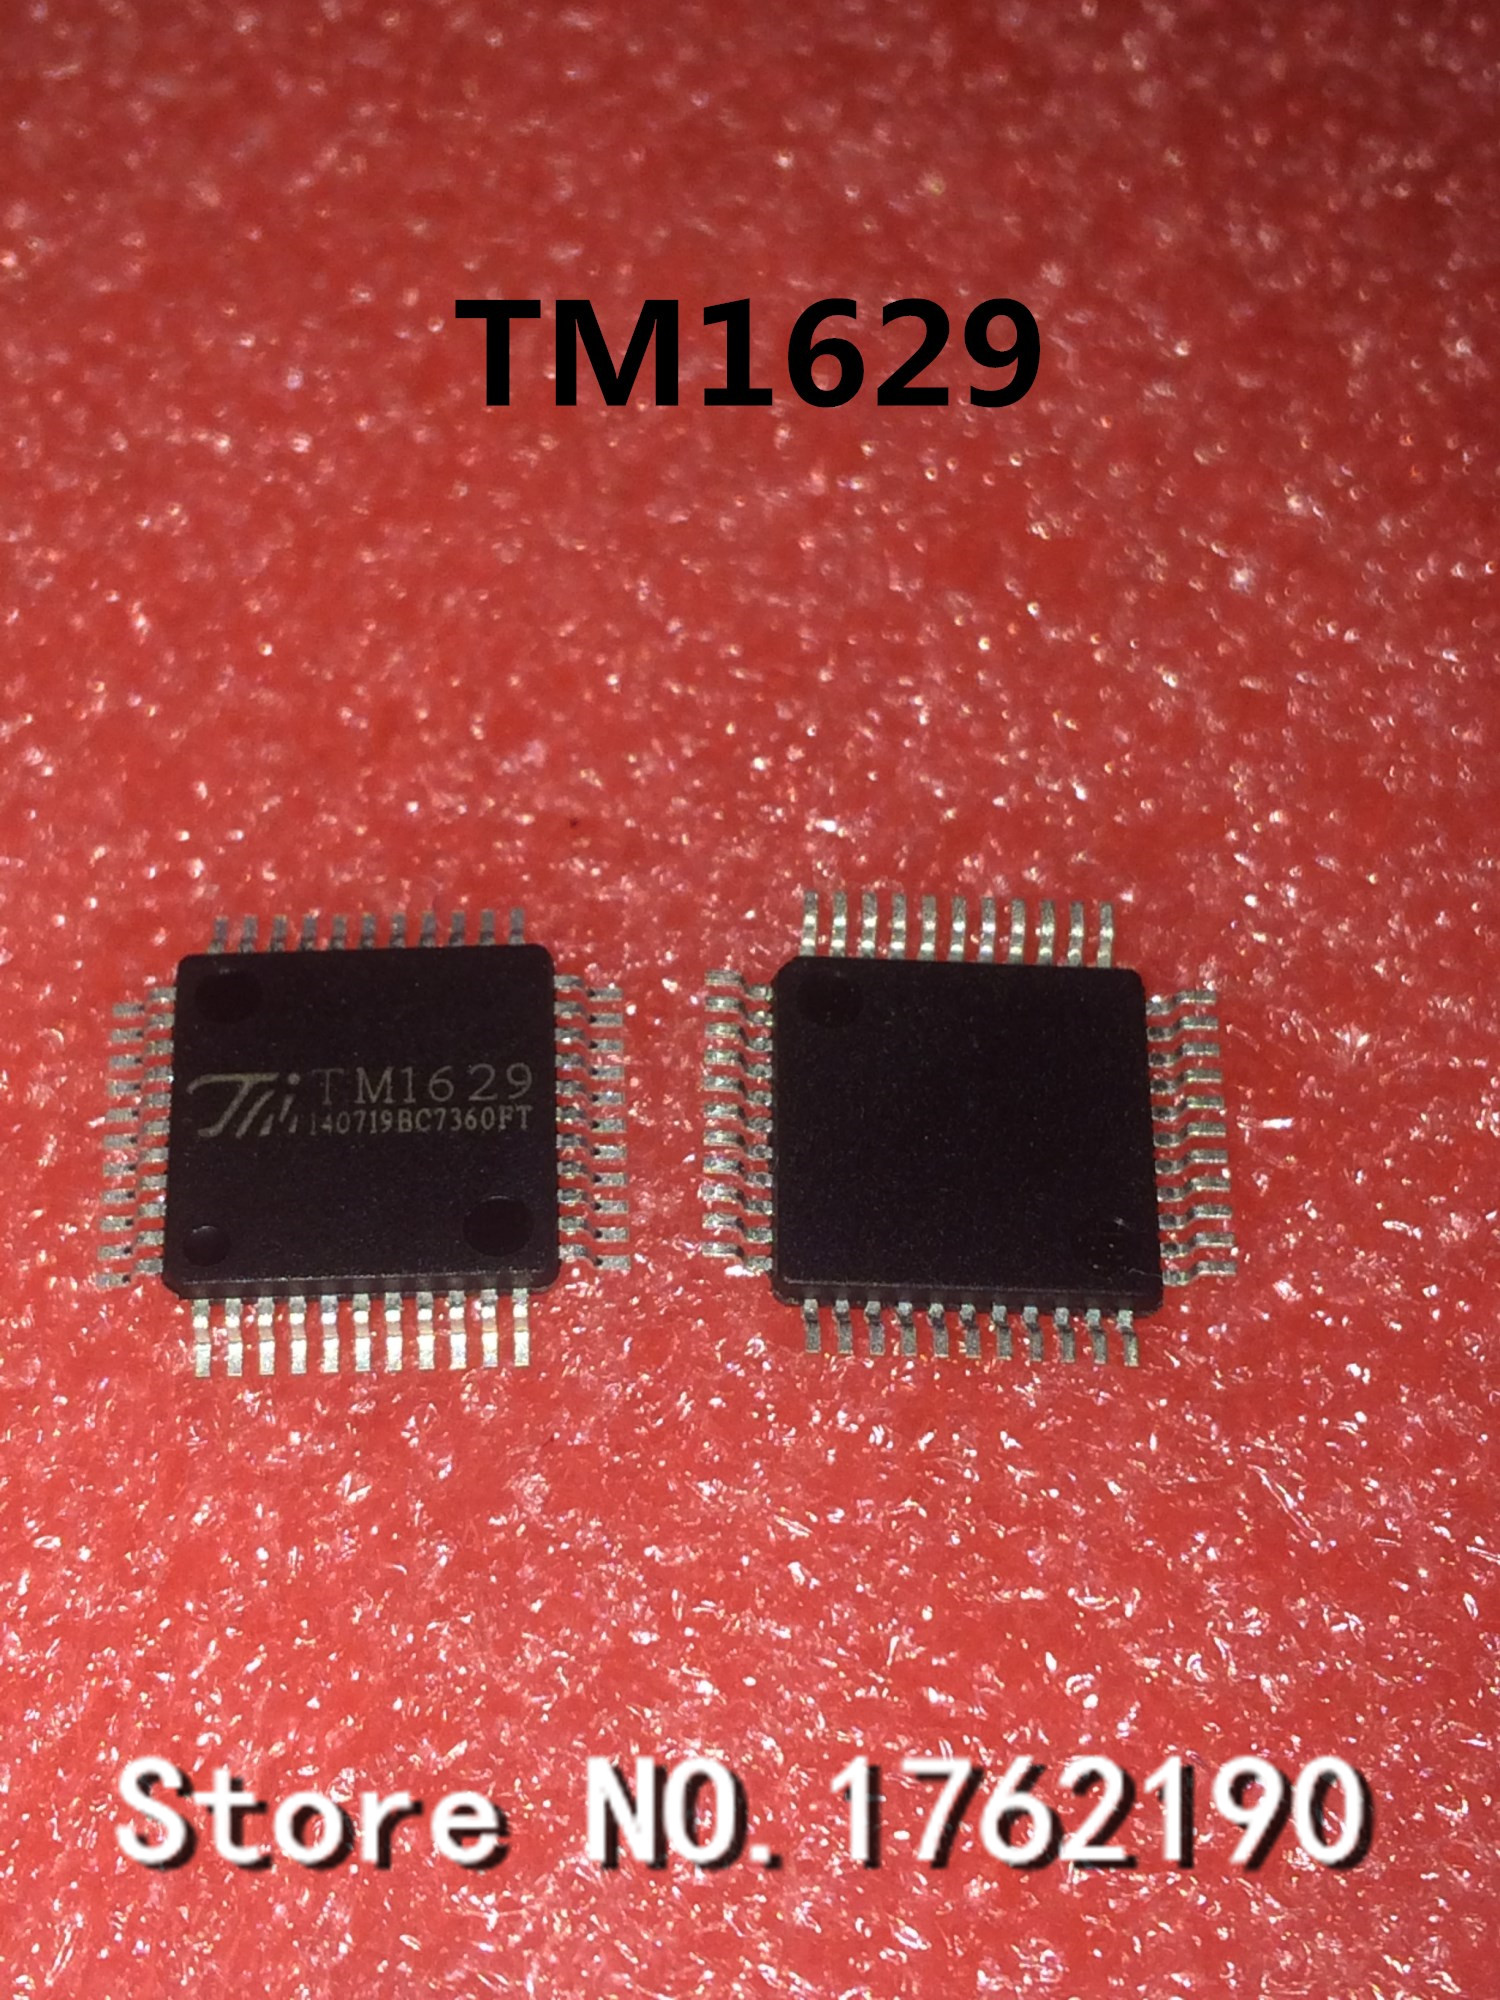 100pcs Lot 30f124 Gt30f124 To220f Liquid Crystal Plasma Brand New 5pcs Tm1629 Lqfp 44 Led Driver Chip